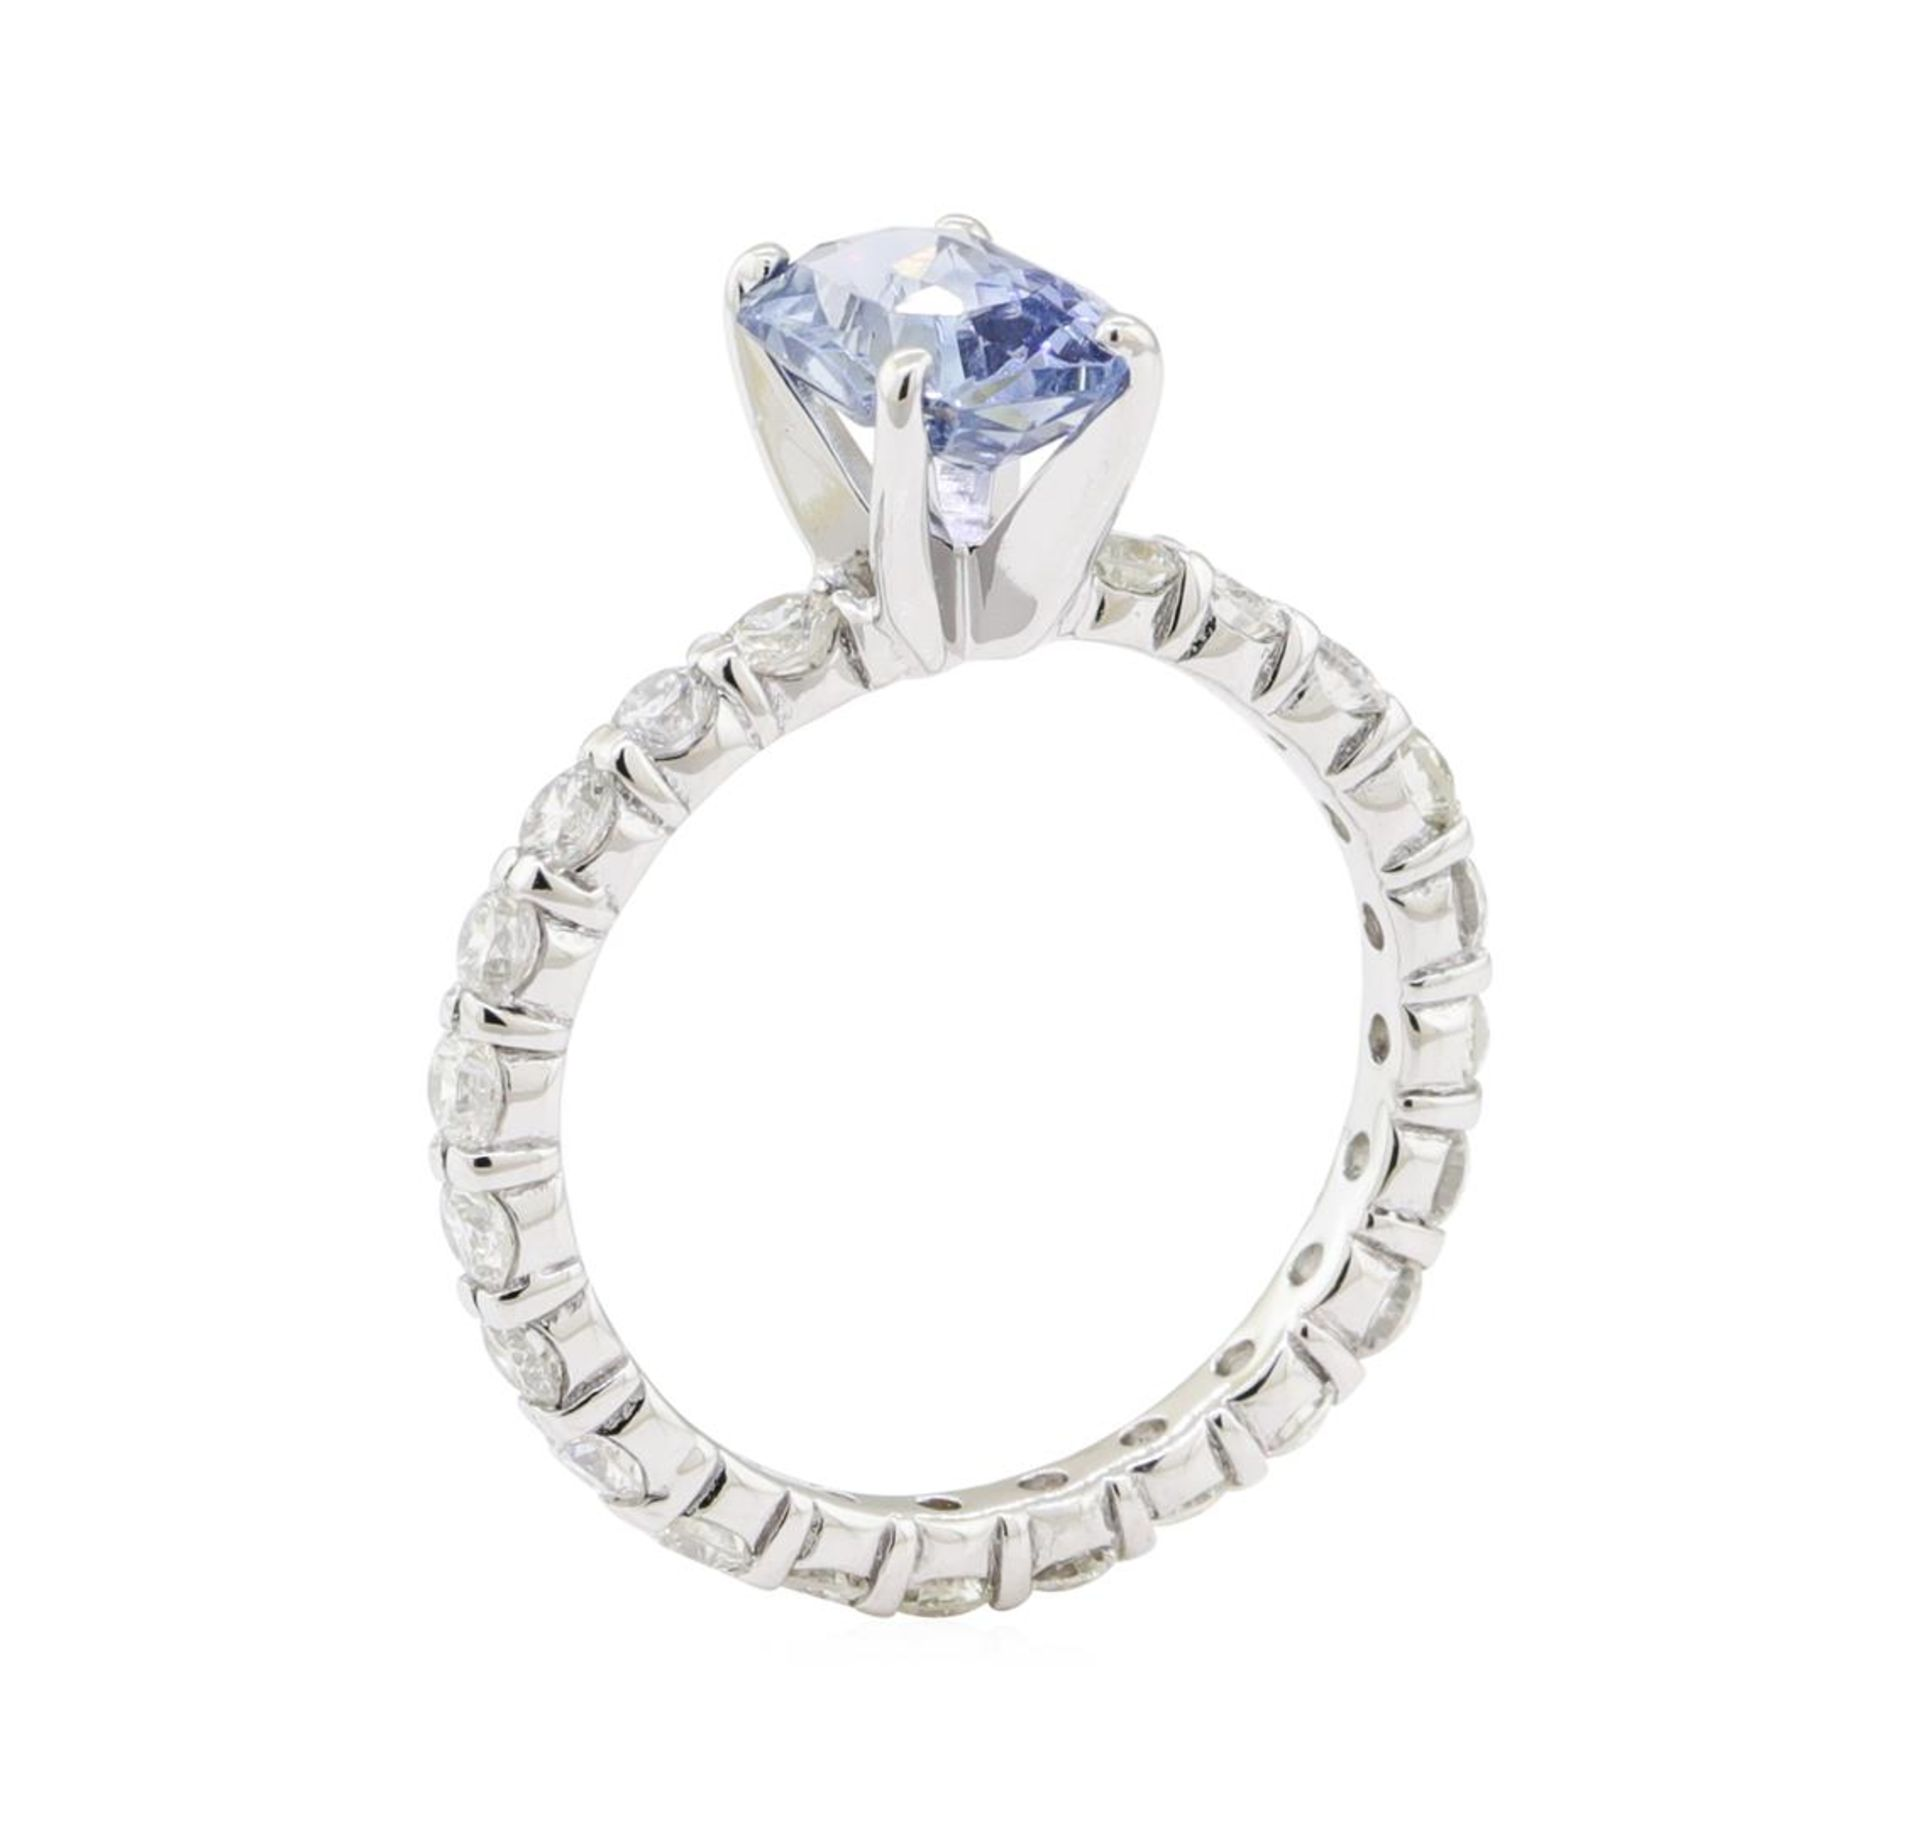 2.84 ctw Sapphire and Diamond Ring - 14KT White Gold - Image 4 of 5